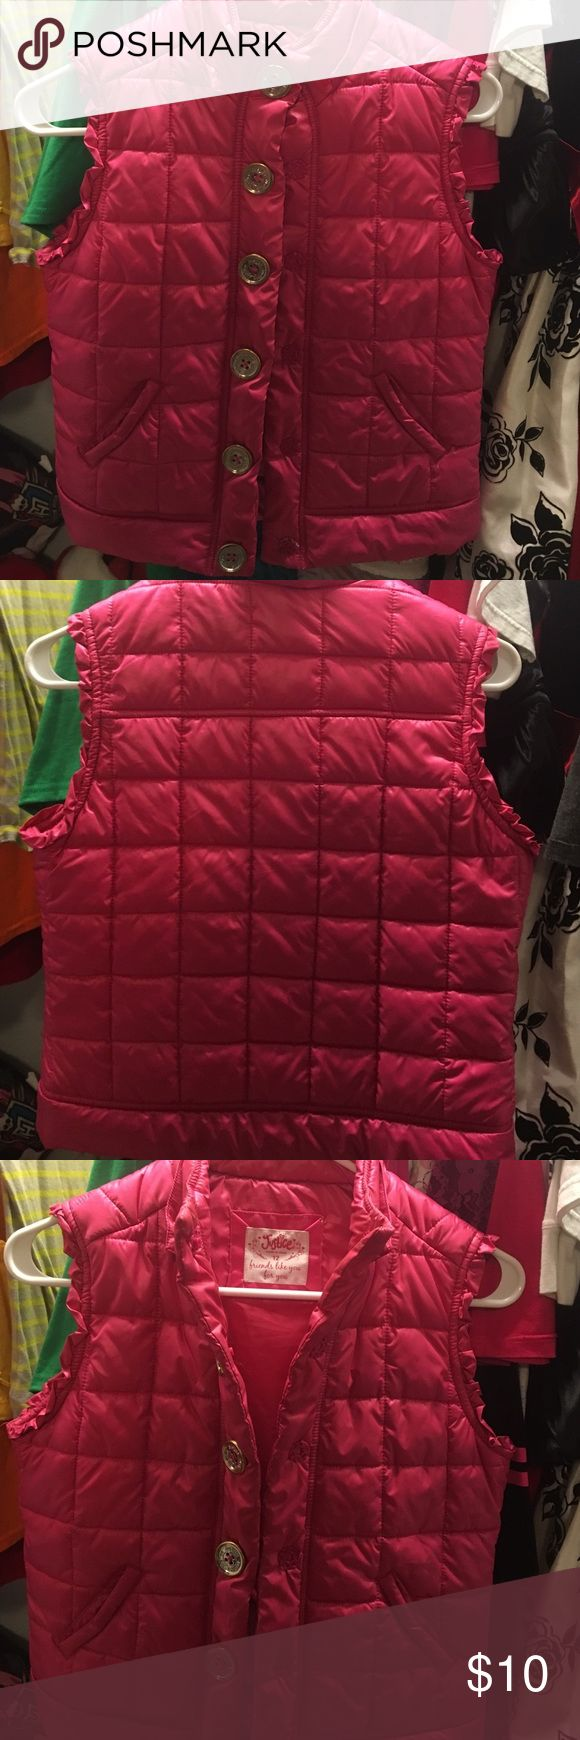 Valentine's Special. Girls pink vest. Good condition. No rips, tears and minimal wearing. Size 12 Jackets & Coats Vests